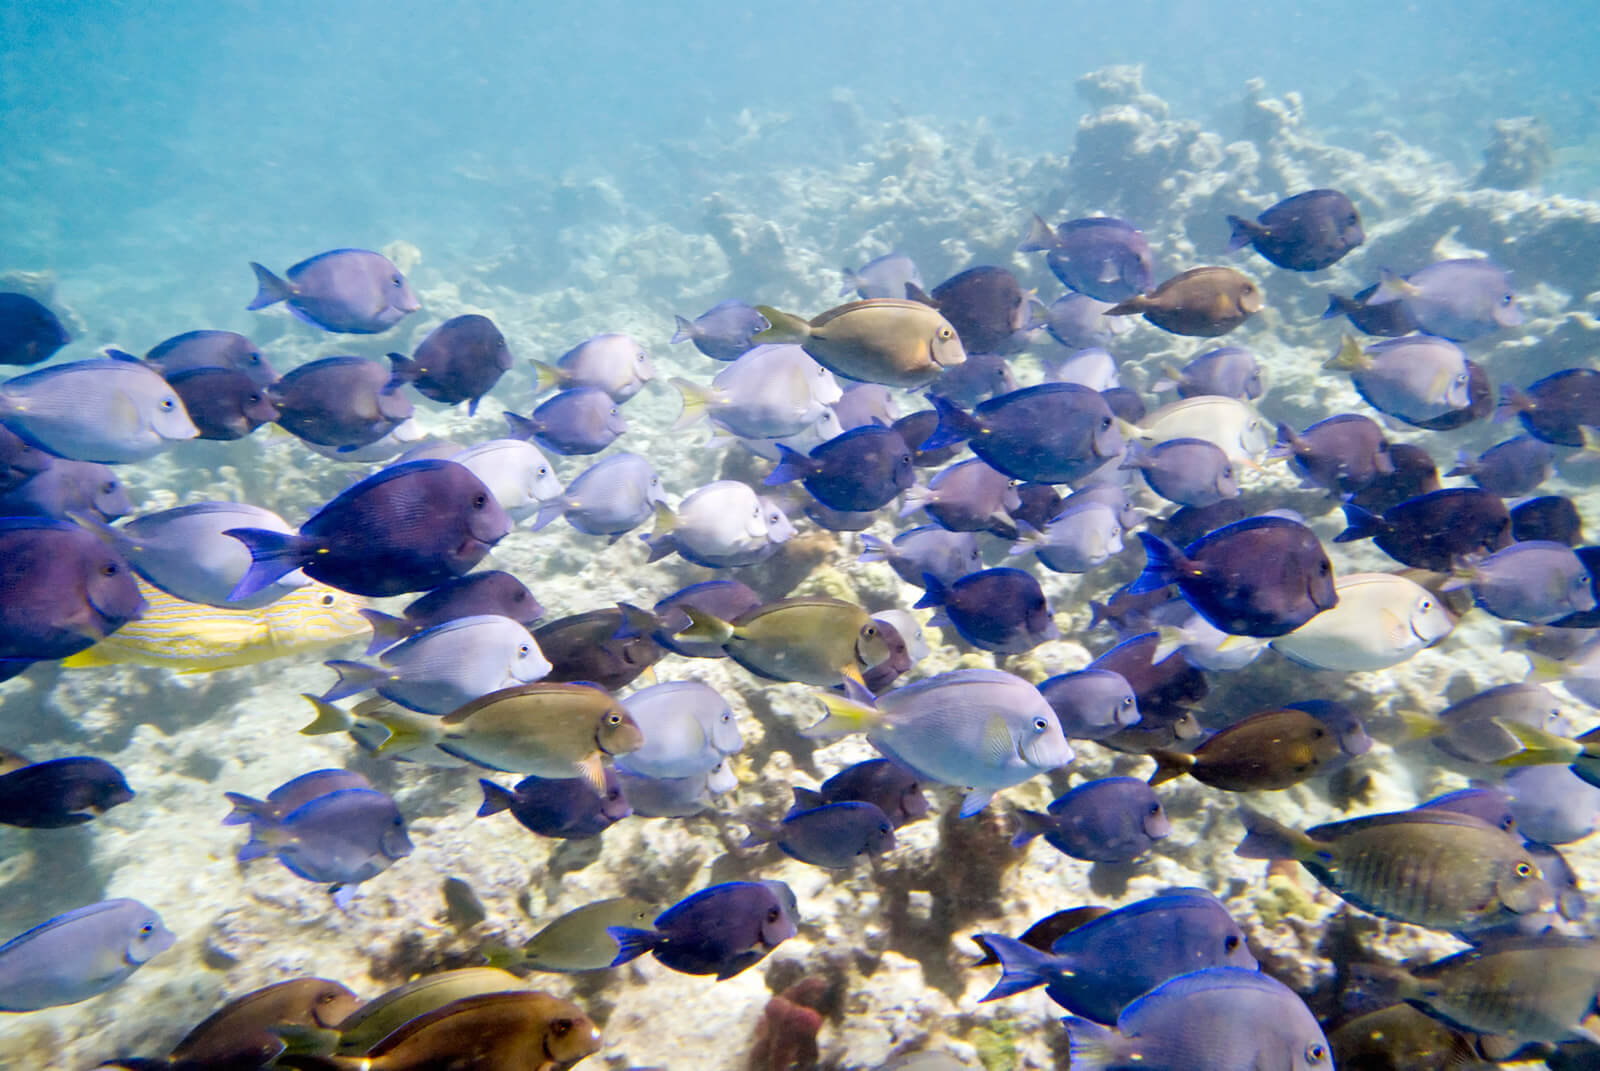 Snorkeling offers many sights